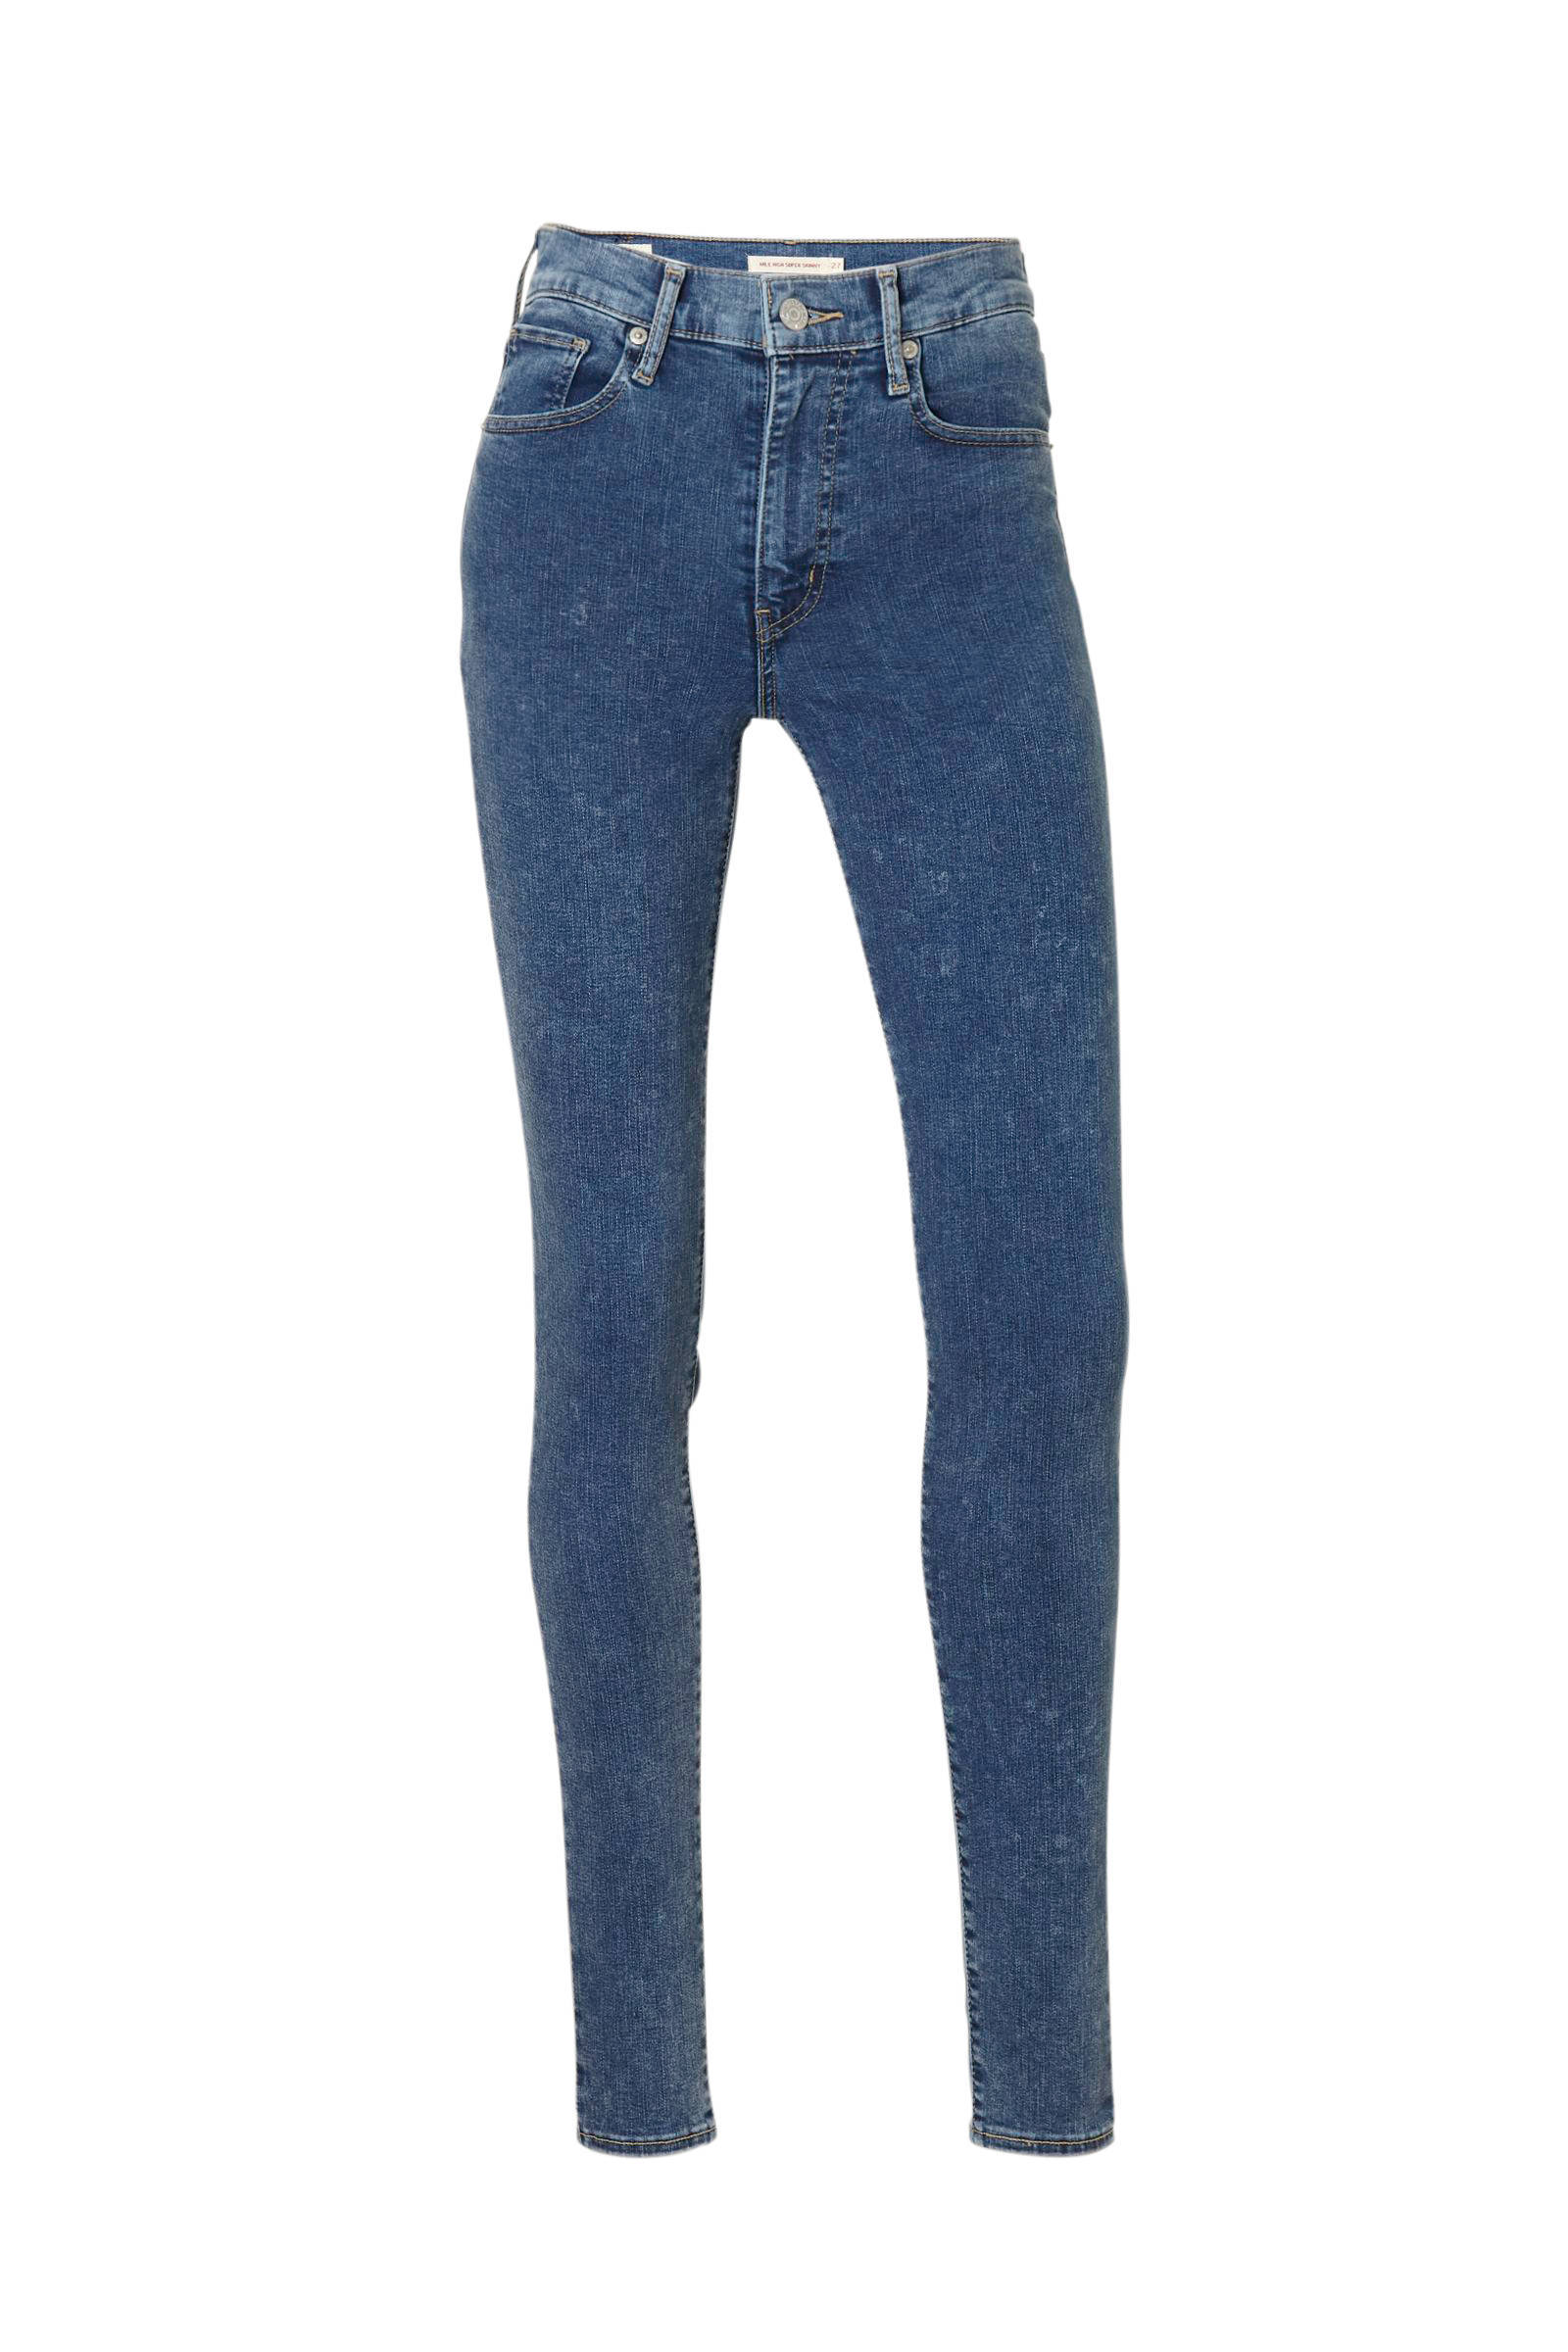 Levi's high waist super skinny fit jeans (dames)